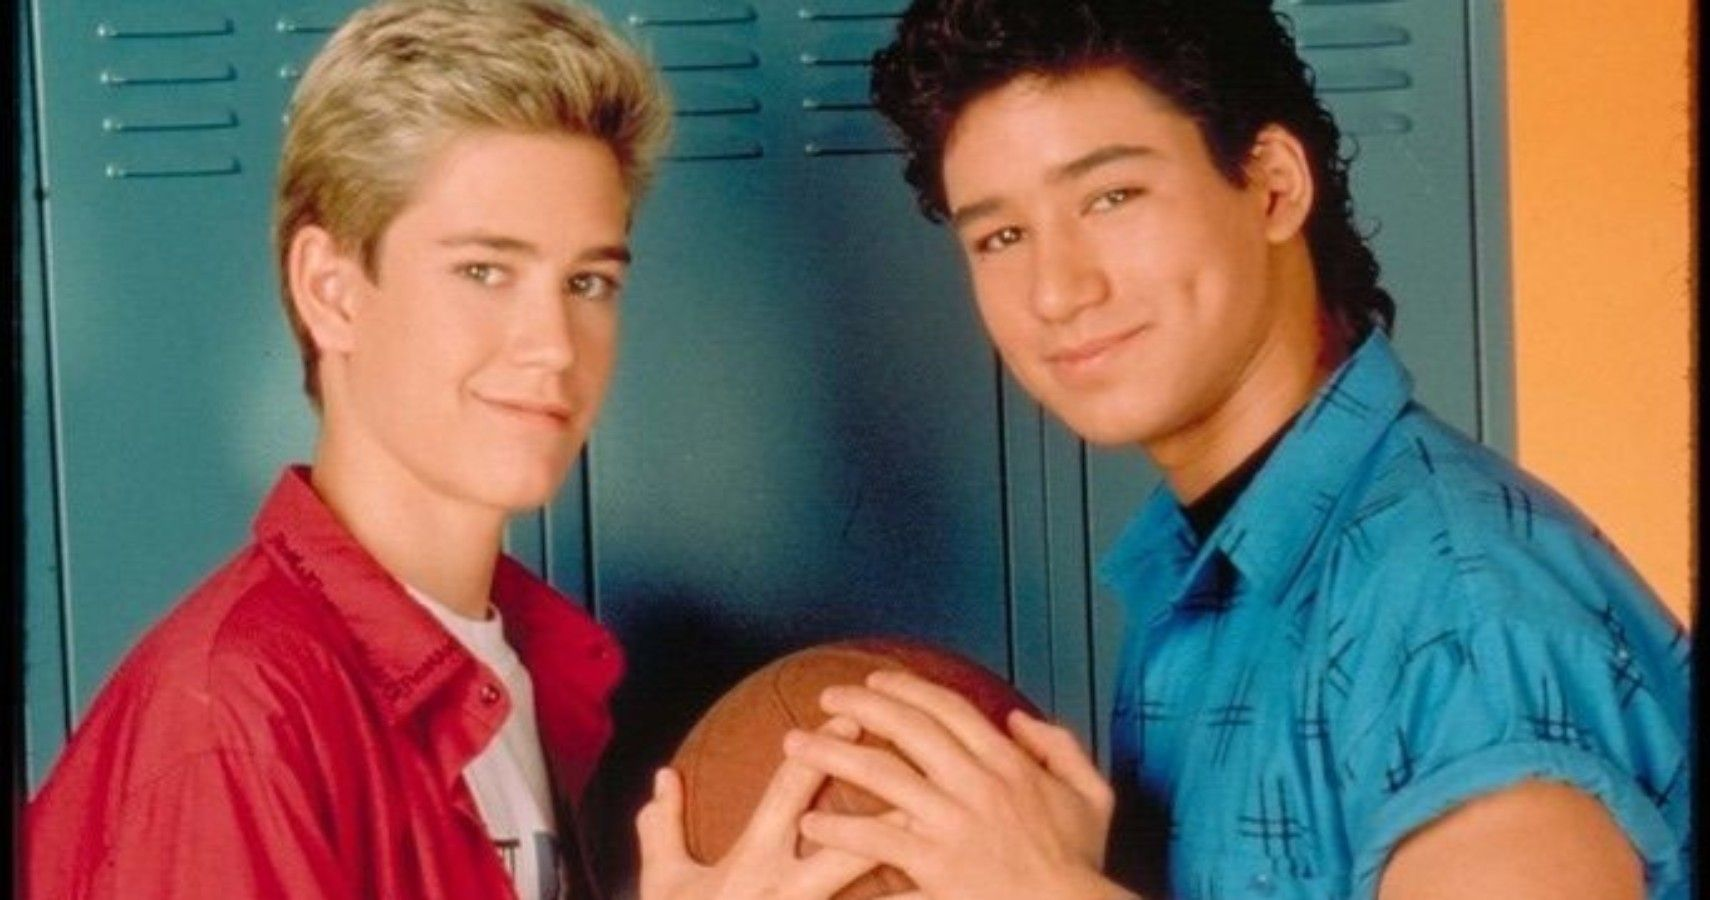 ac-slater-zack-morris-friends-saved-by-t